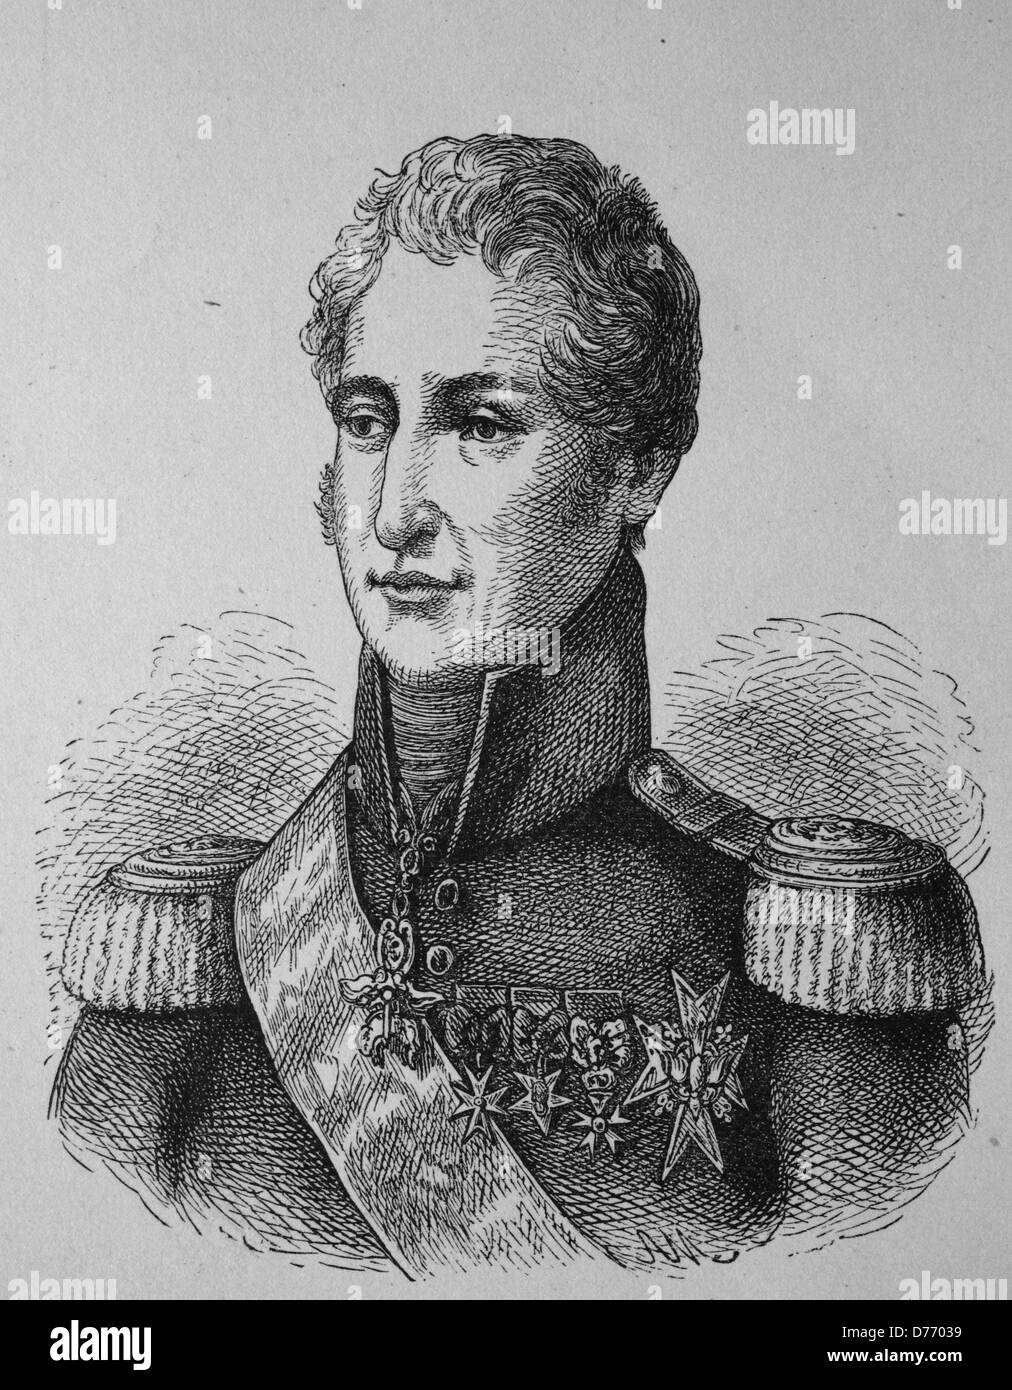 Charles X, Charles X Philippe, 1757 - 1836, last king of France and Navarre, woodcut from 1880 - Stock Image